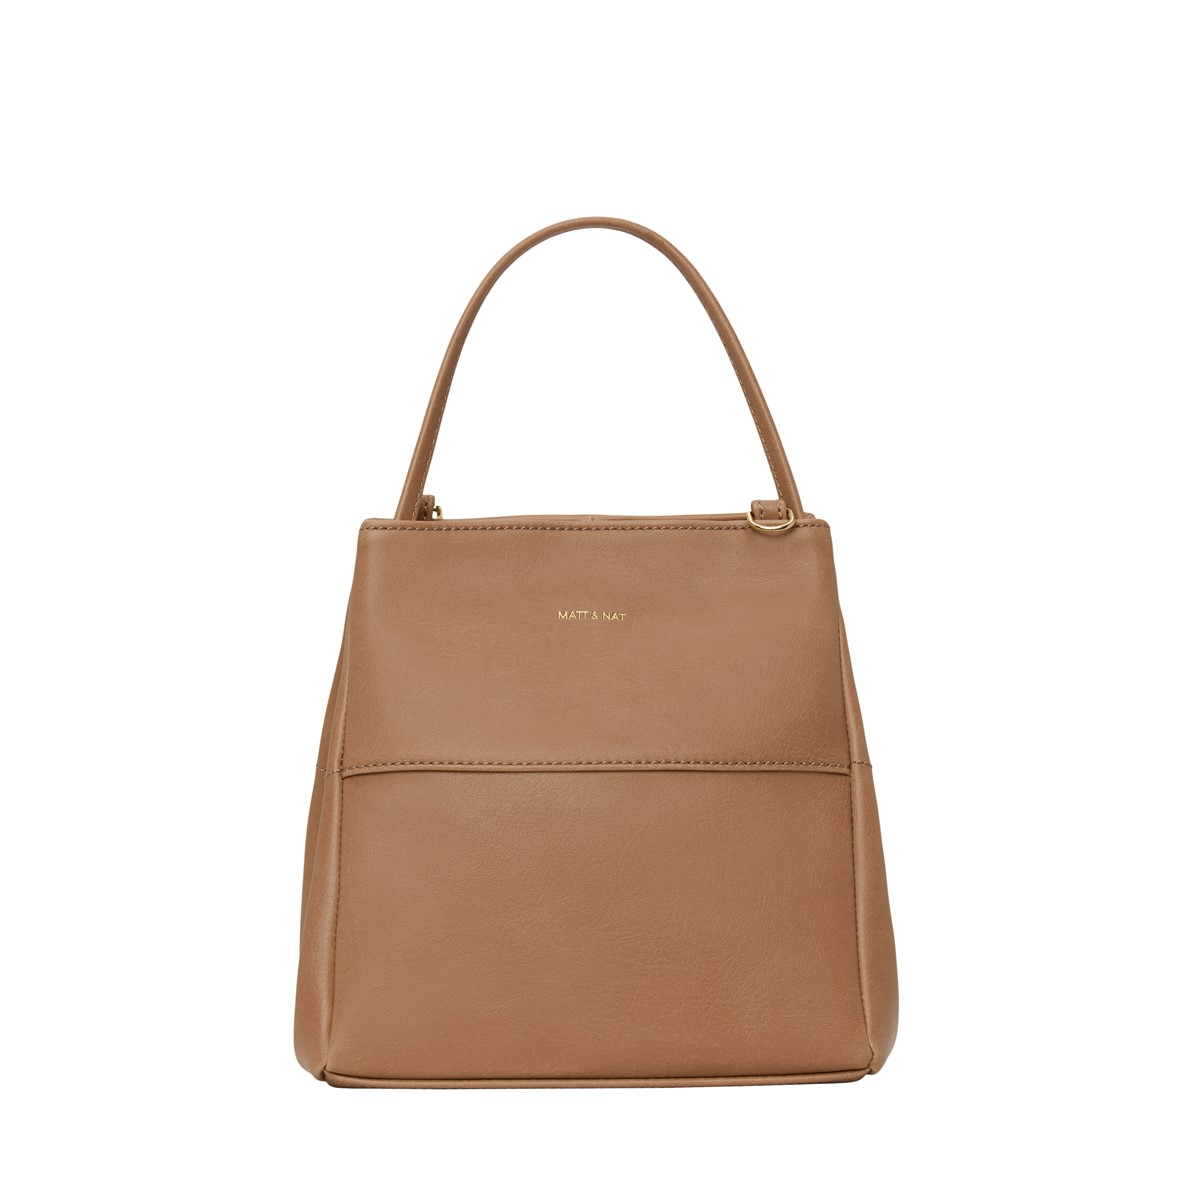 Willasm Purse in Brown